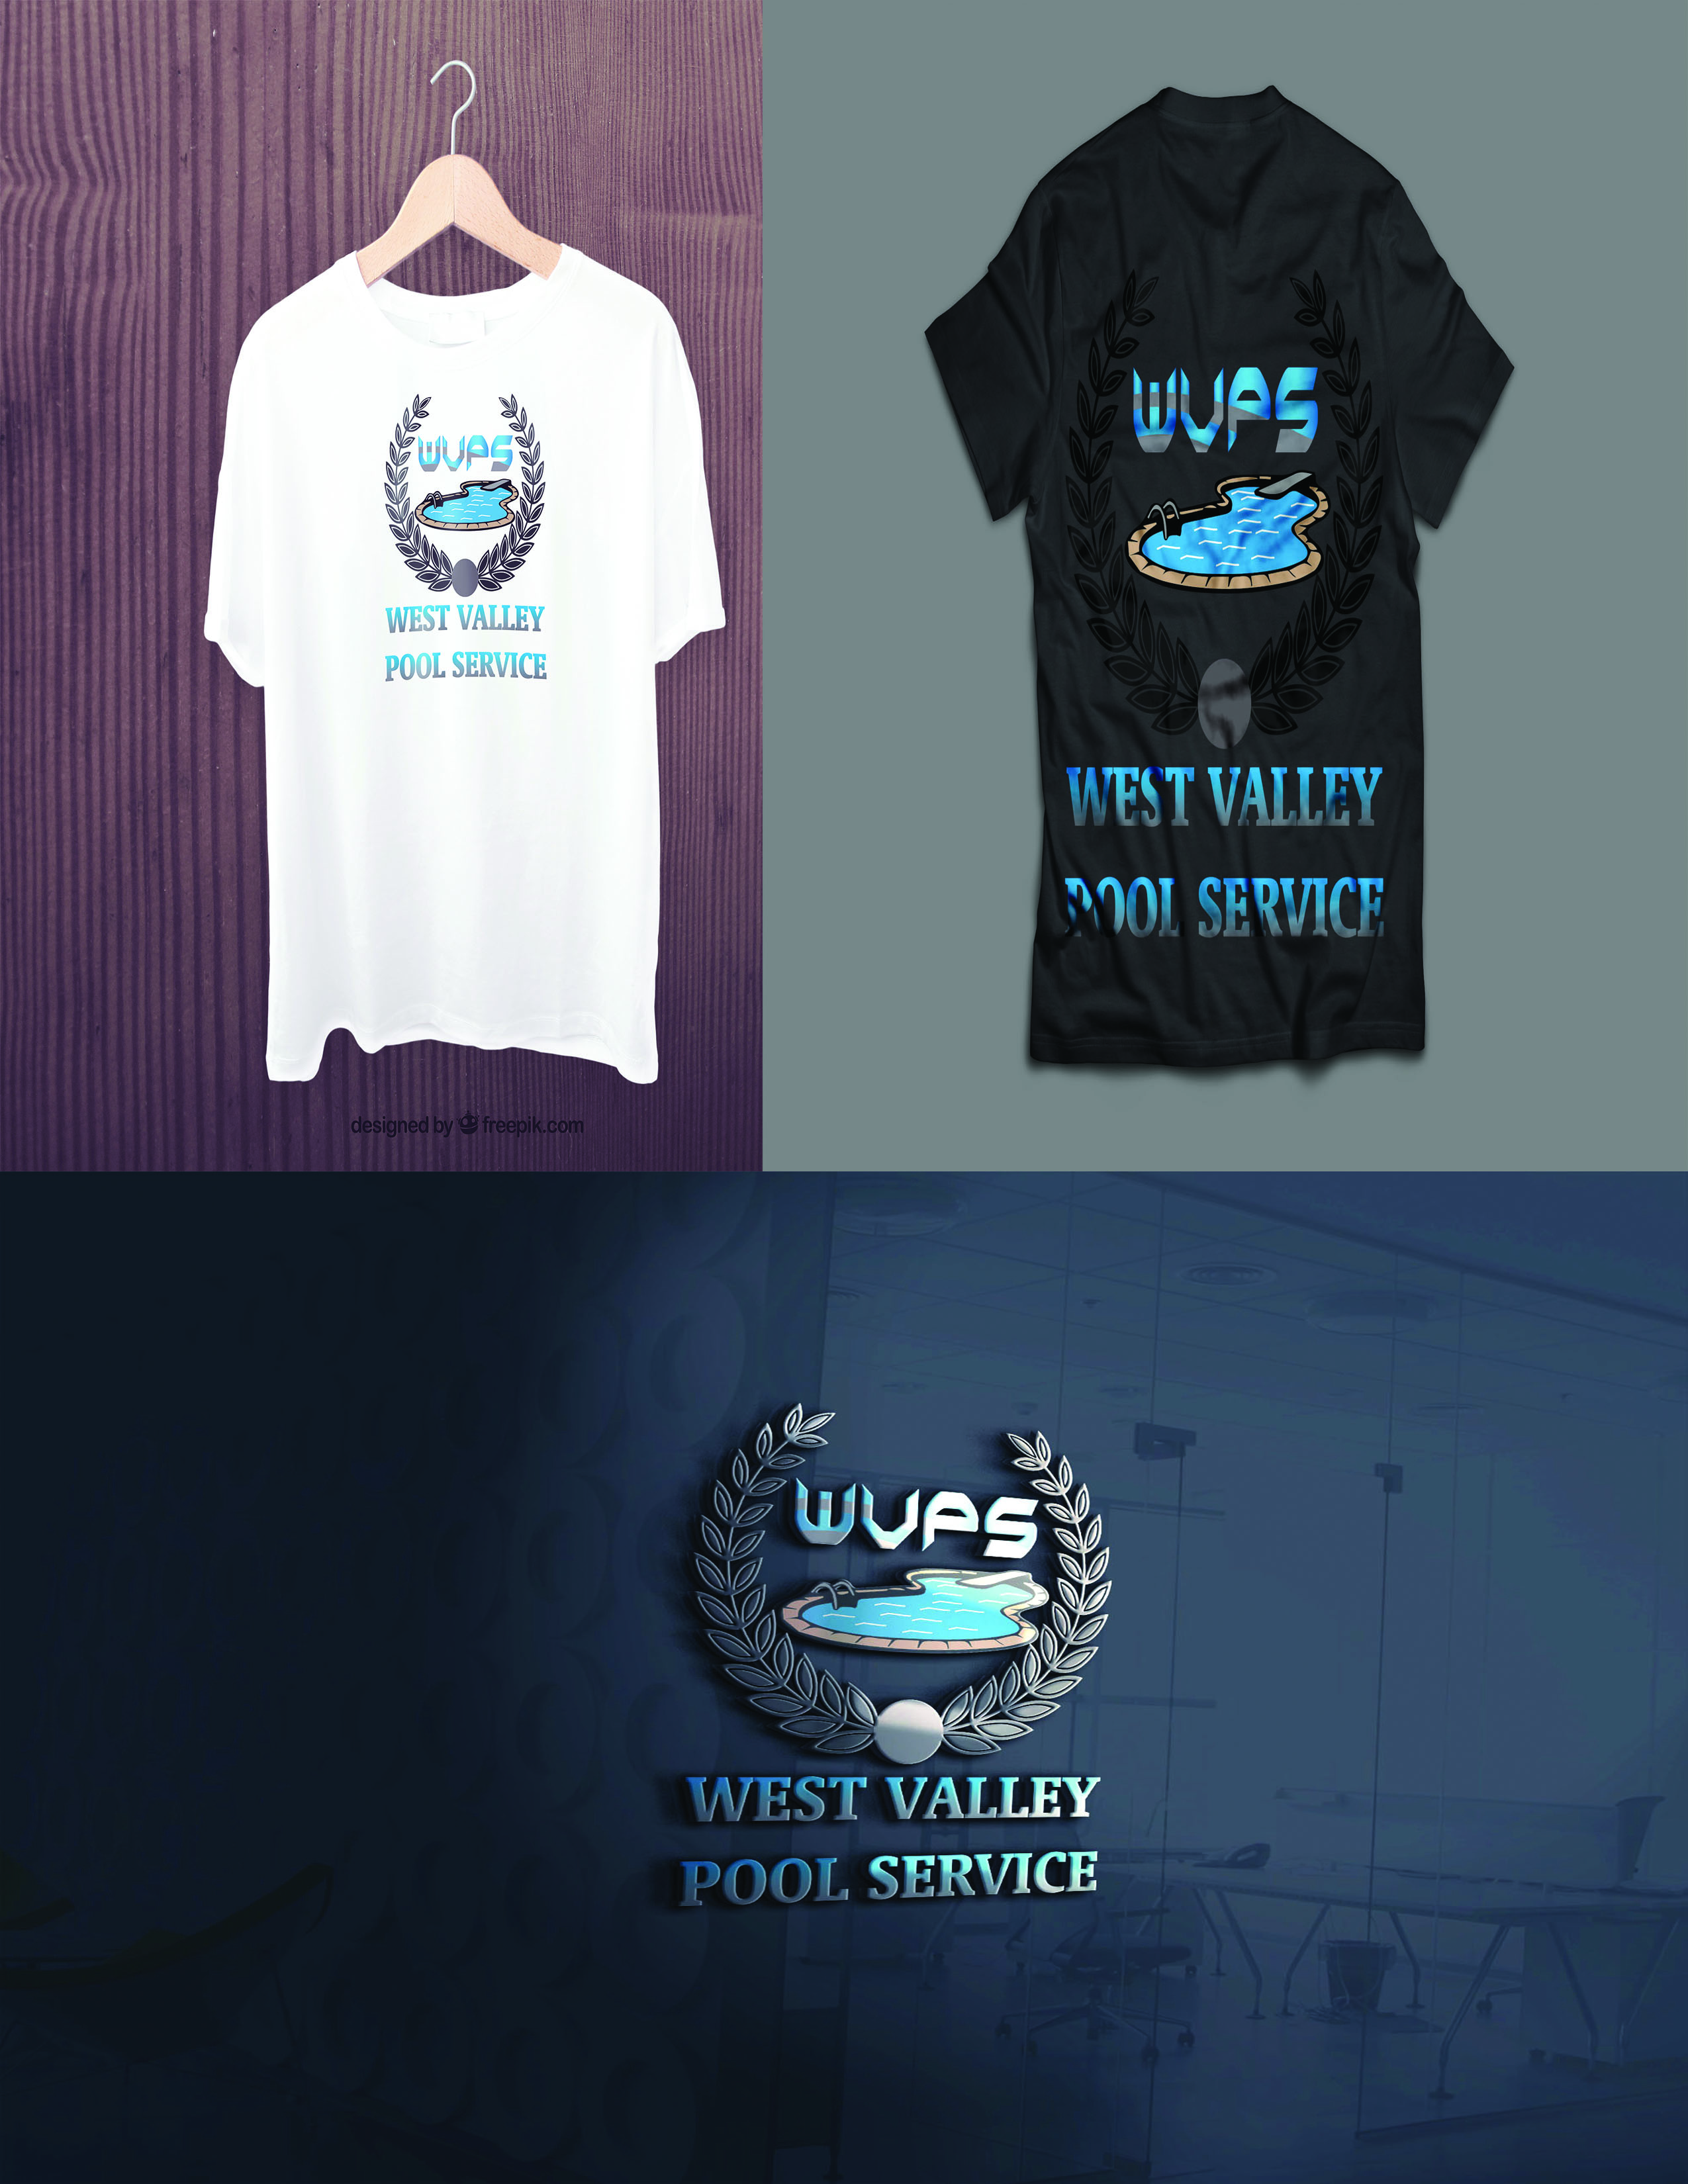 Logo Design by Umair ahmed Iqbal - Entry No. 79 in the Logo Design Contest Clever Logo Design for West Valley Pool Service.